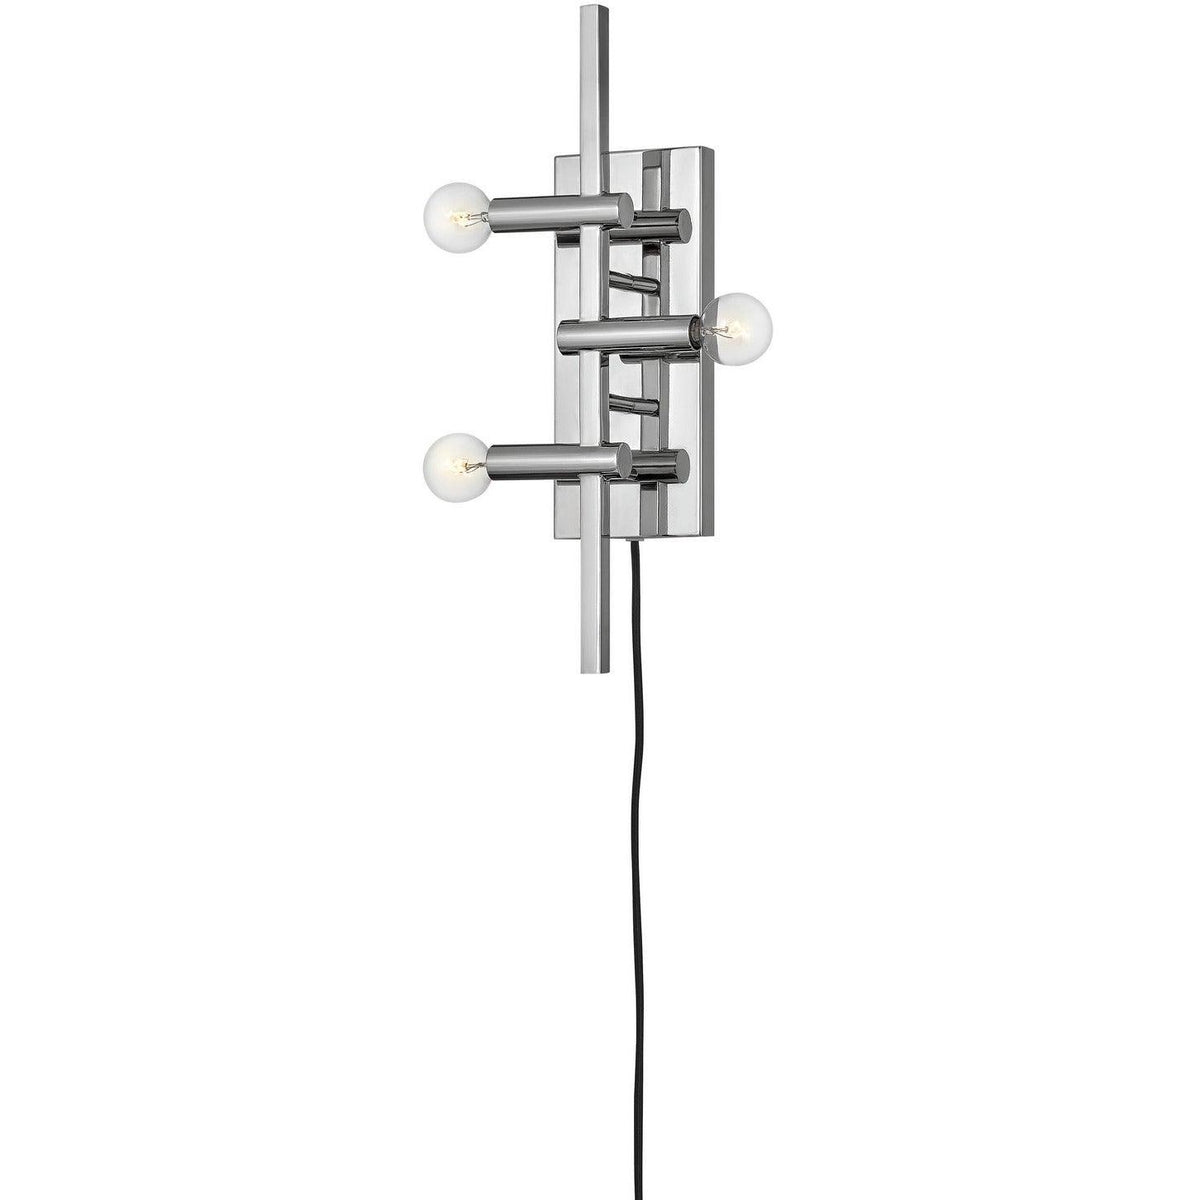 Hinkley Canada - 4122PN - Three Light Wall Sconce - Kinzie - Polished Nickel